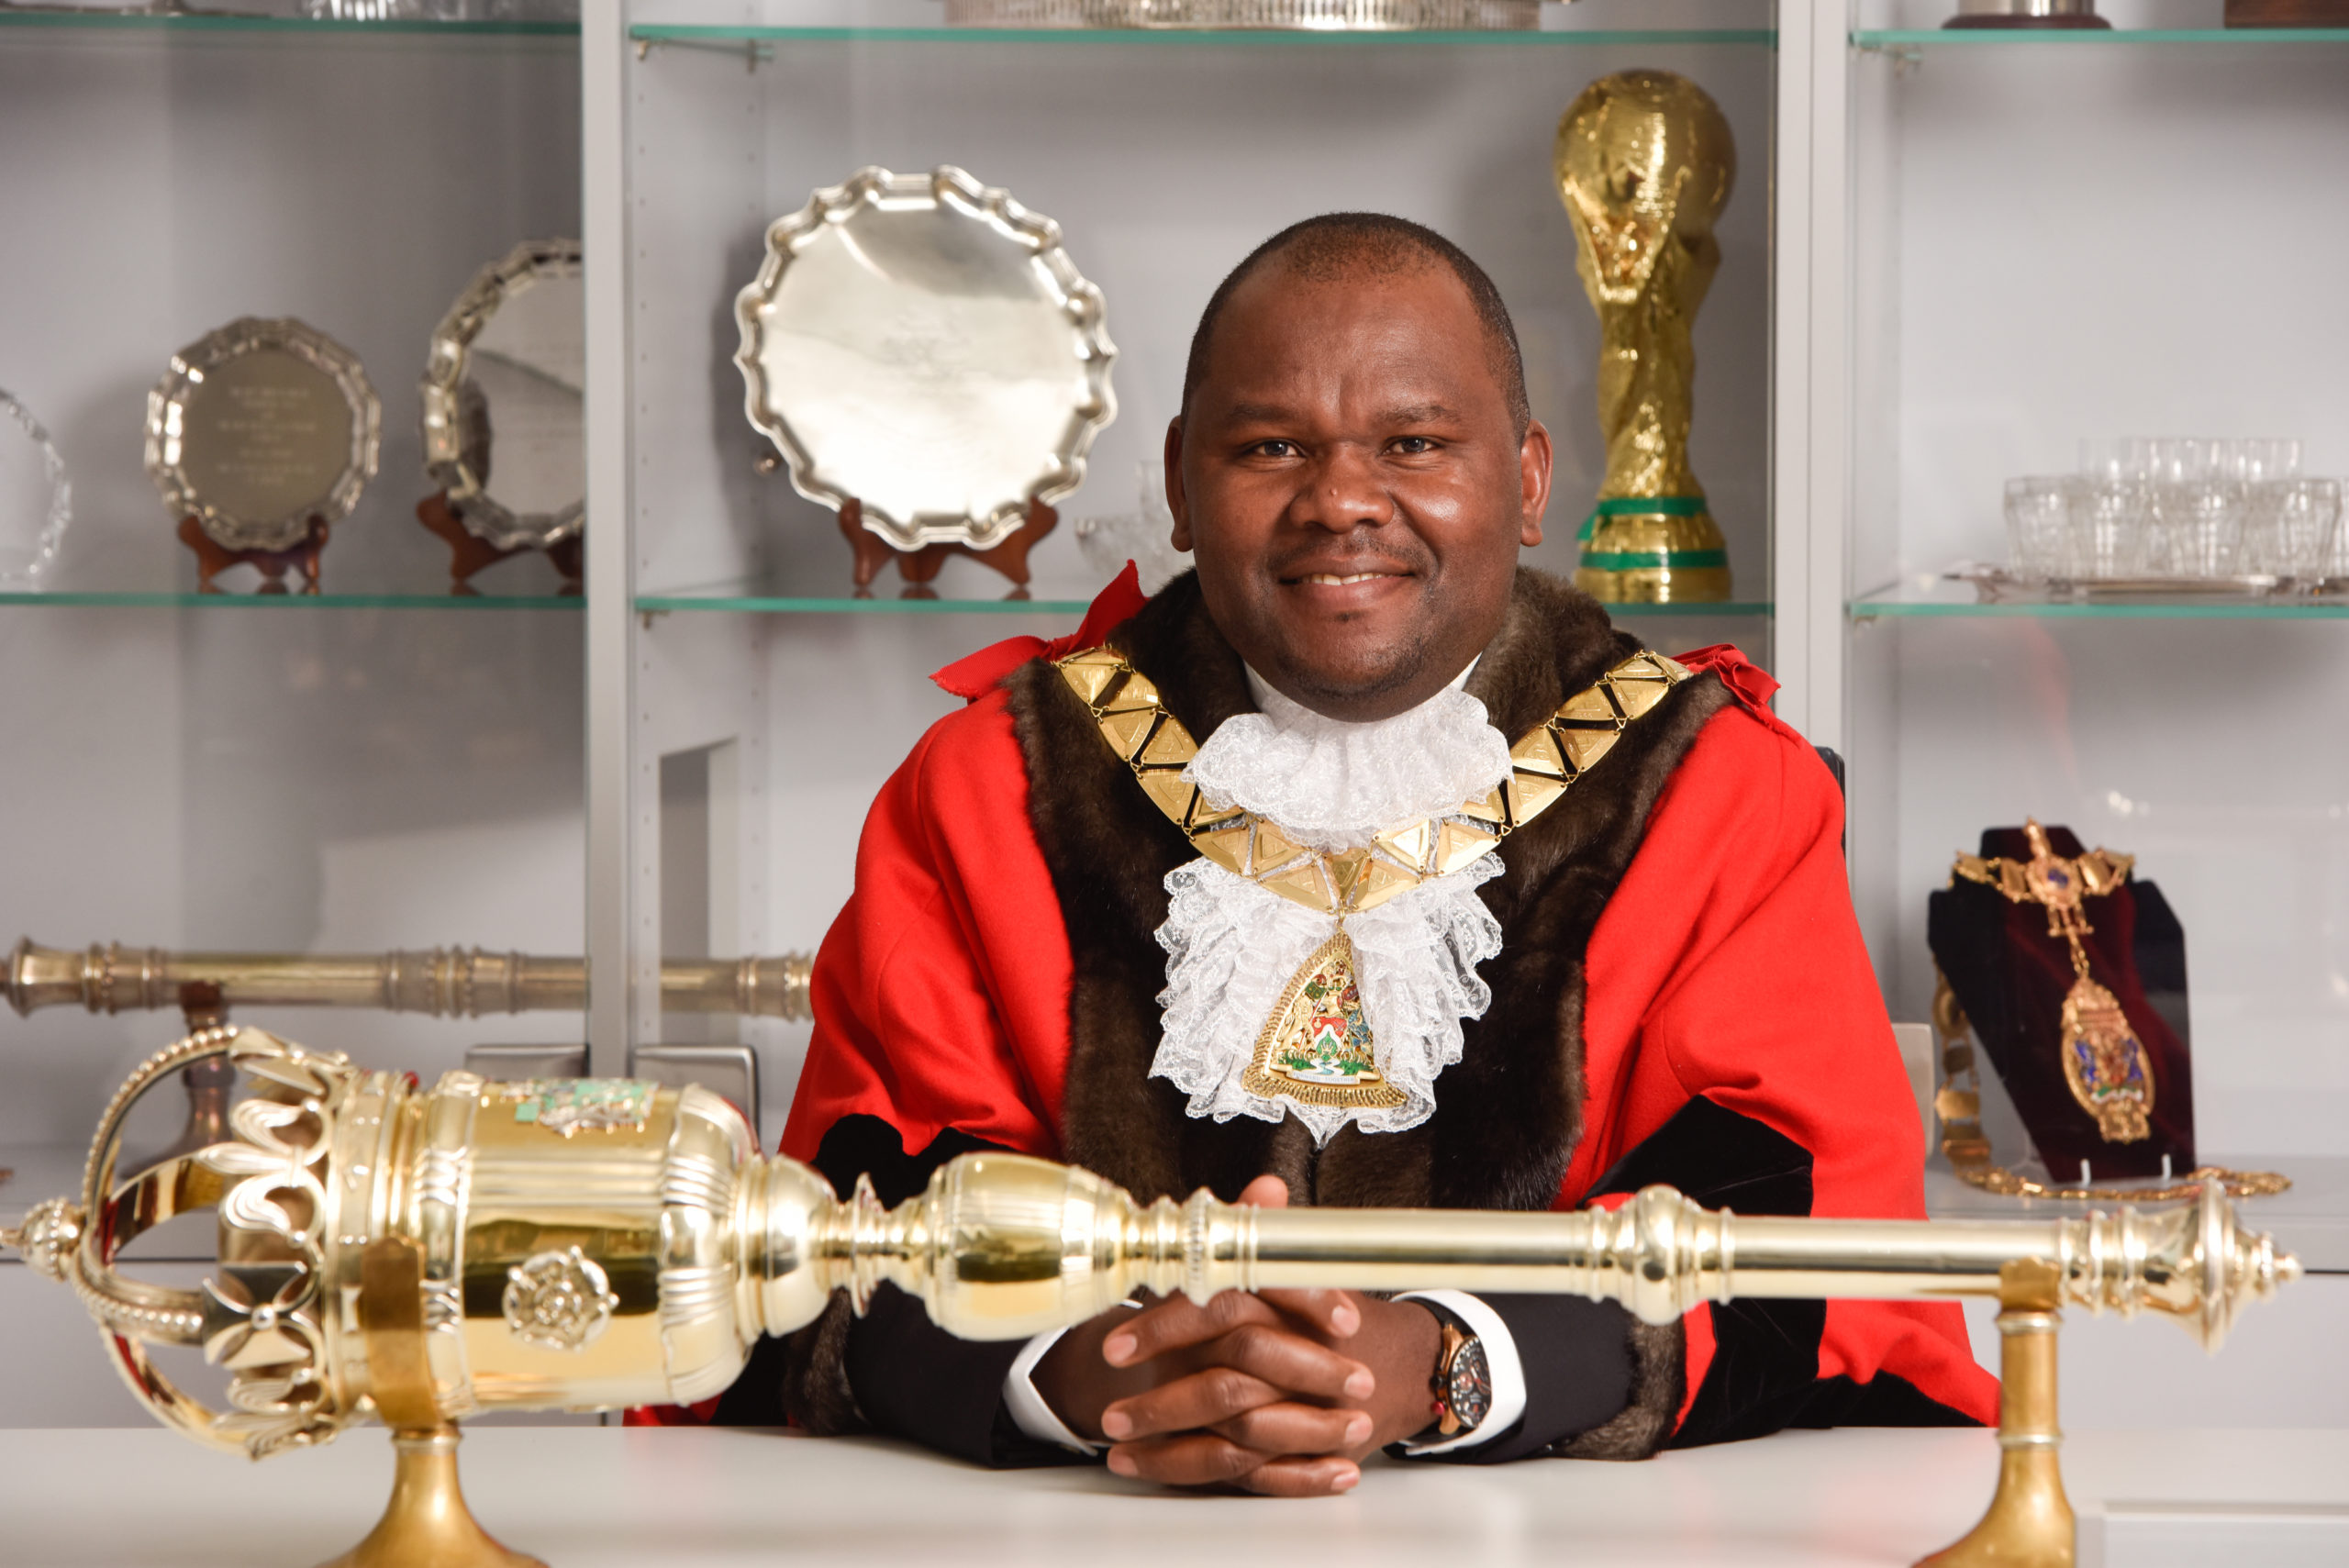 The Mayor of Brent at his desk